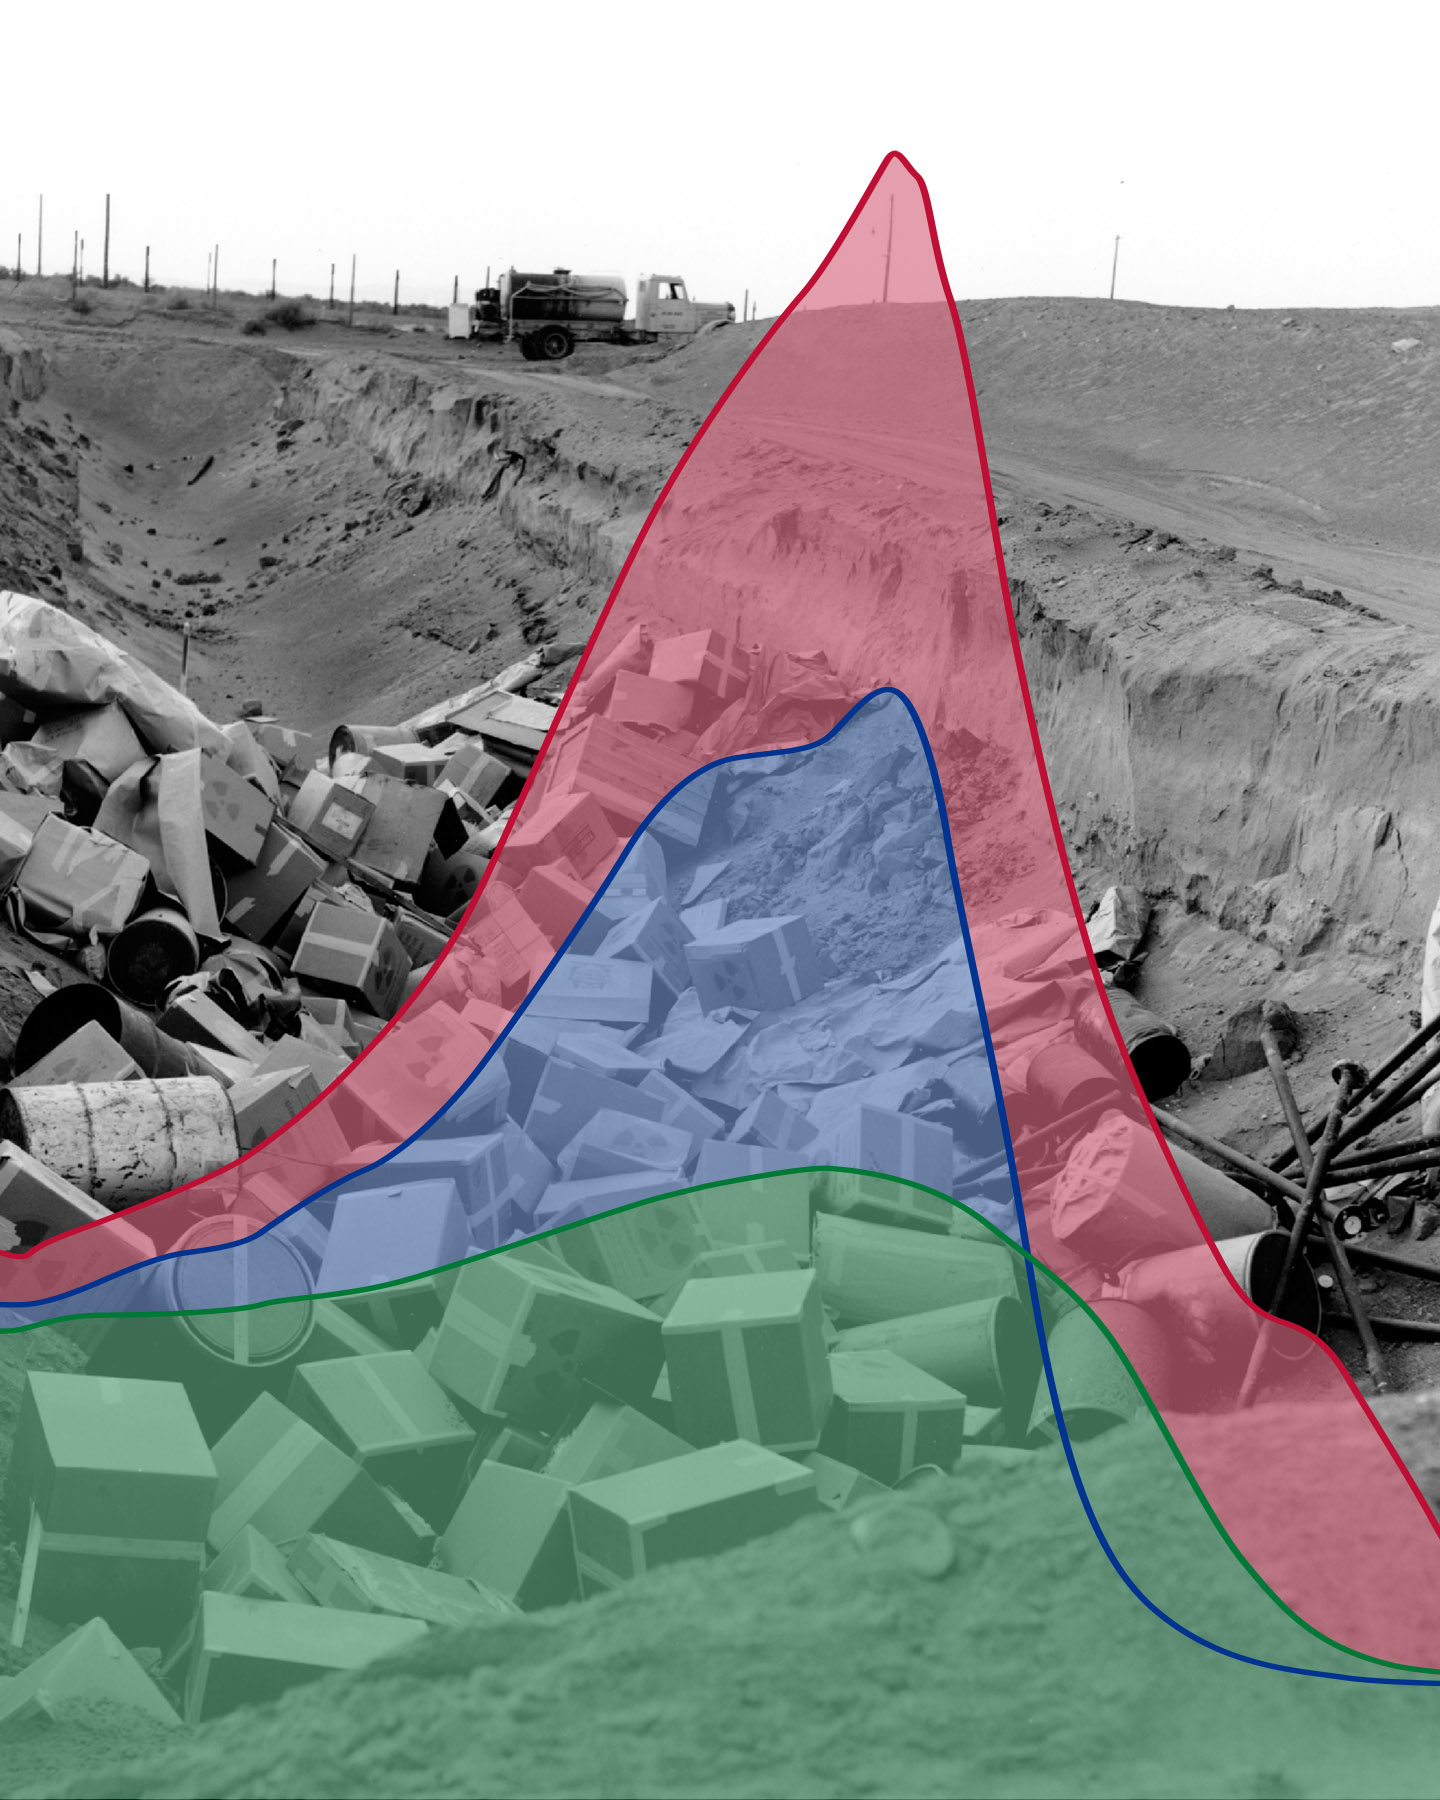 NMR curves over waste site